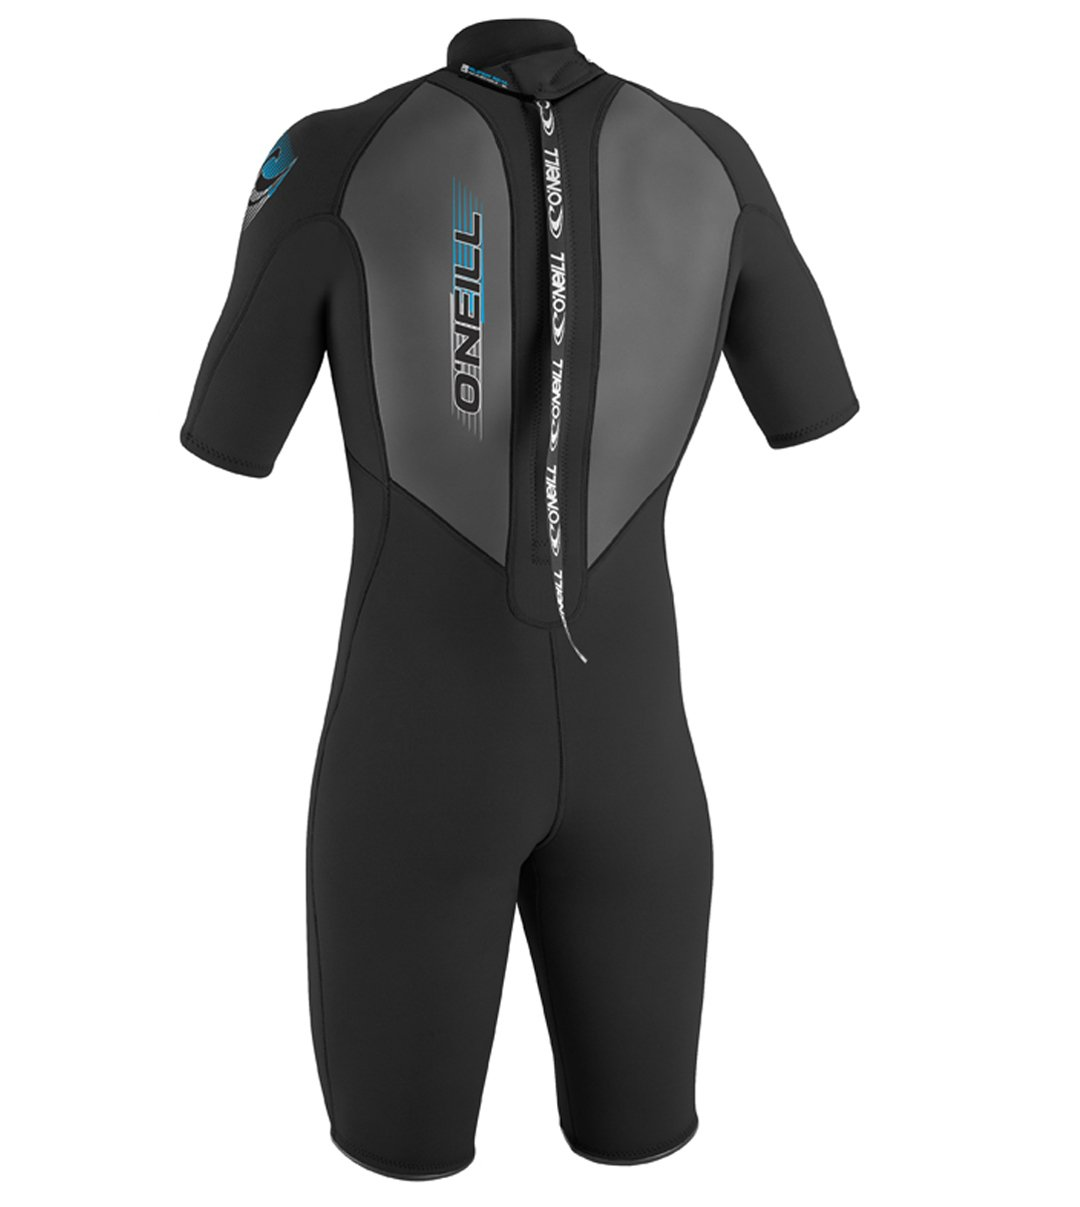 O'Neill Men's Reactor 2mm Back Zip Spring Wetsuit, Black, XX-Large by O'Neill Wetsuits (Image #2)